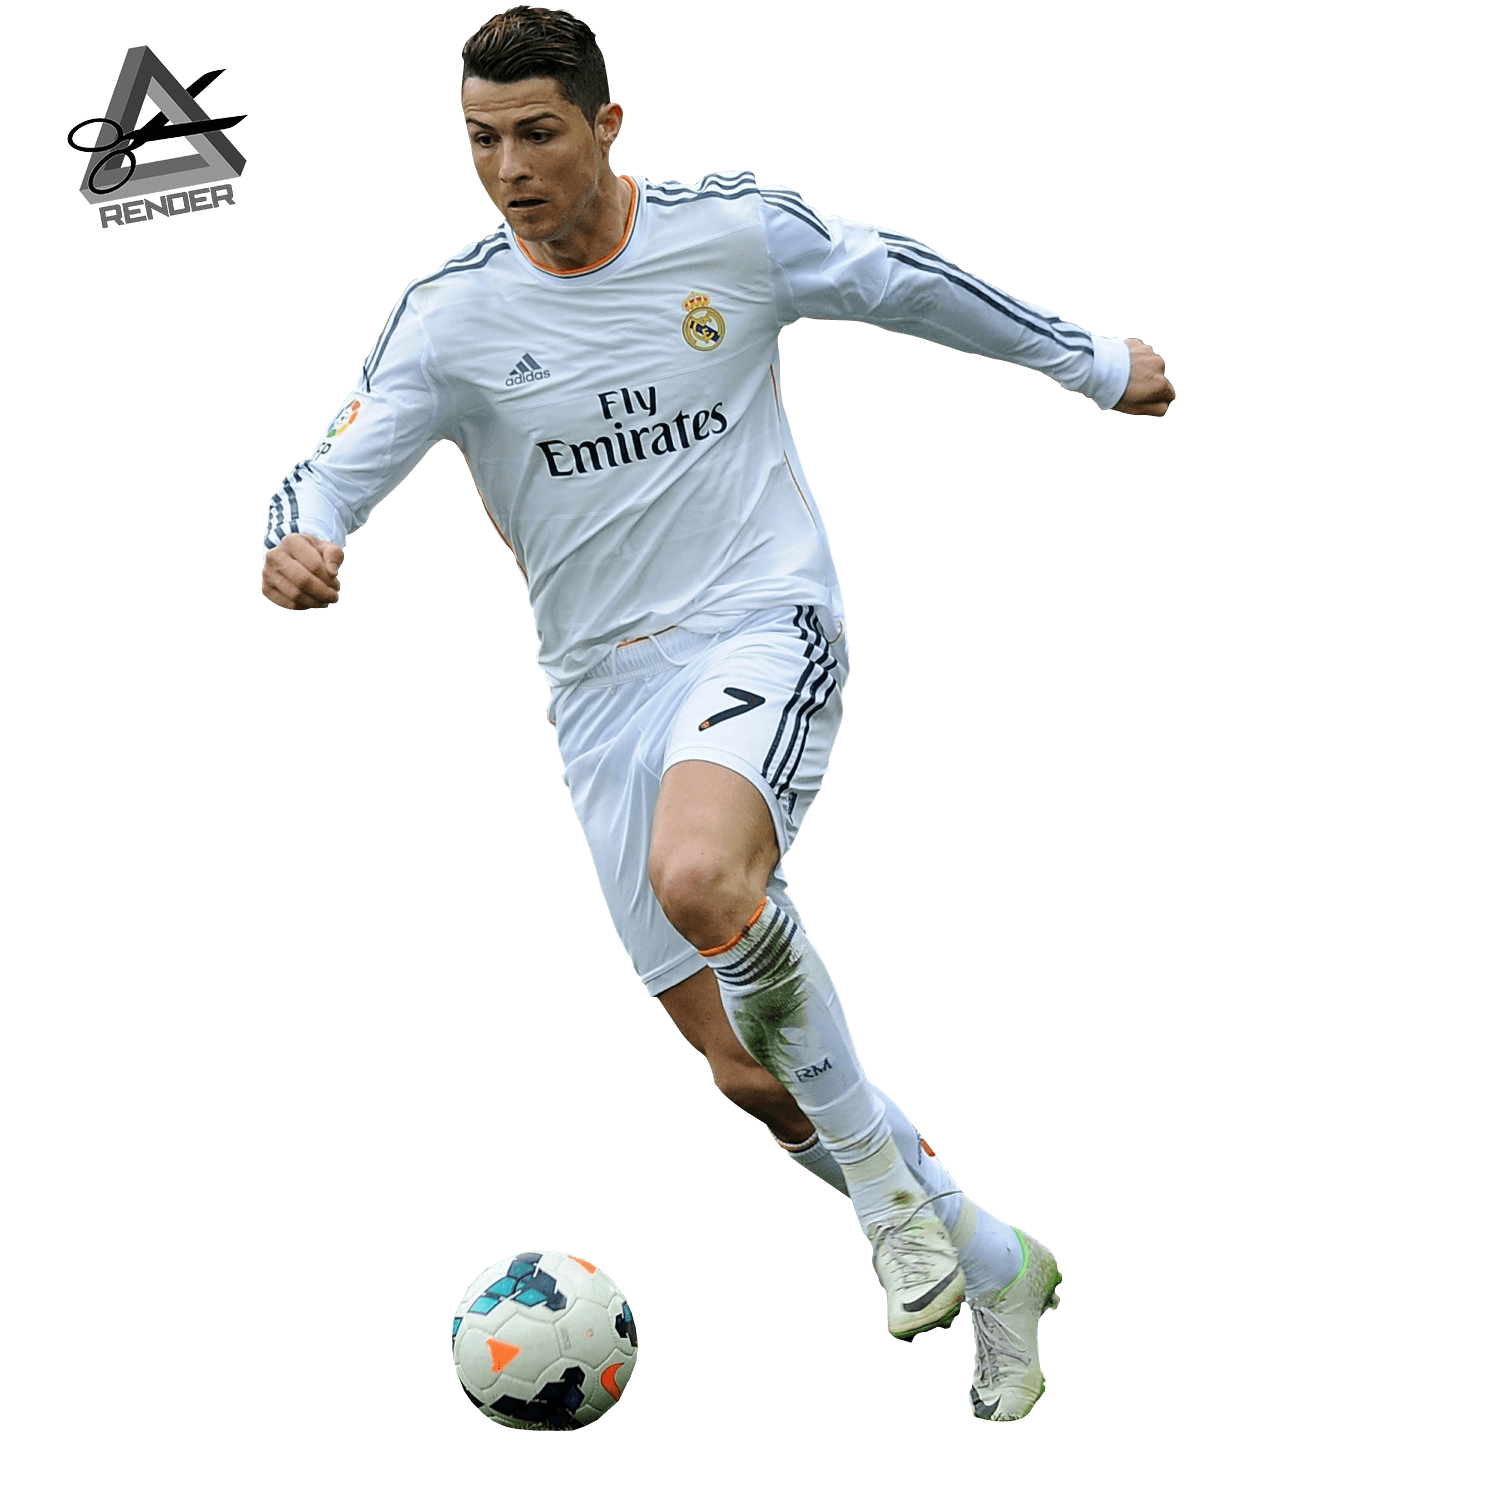 Cristiano Ronaldo Wallpapers Image image #45119